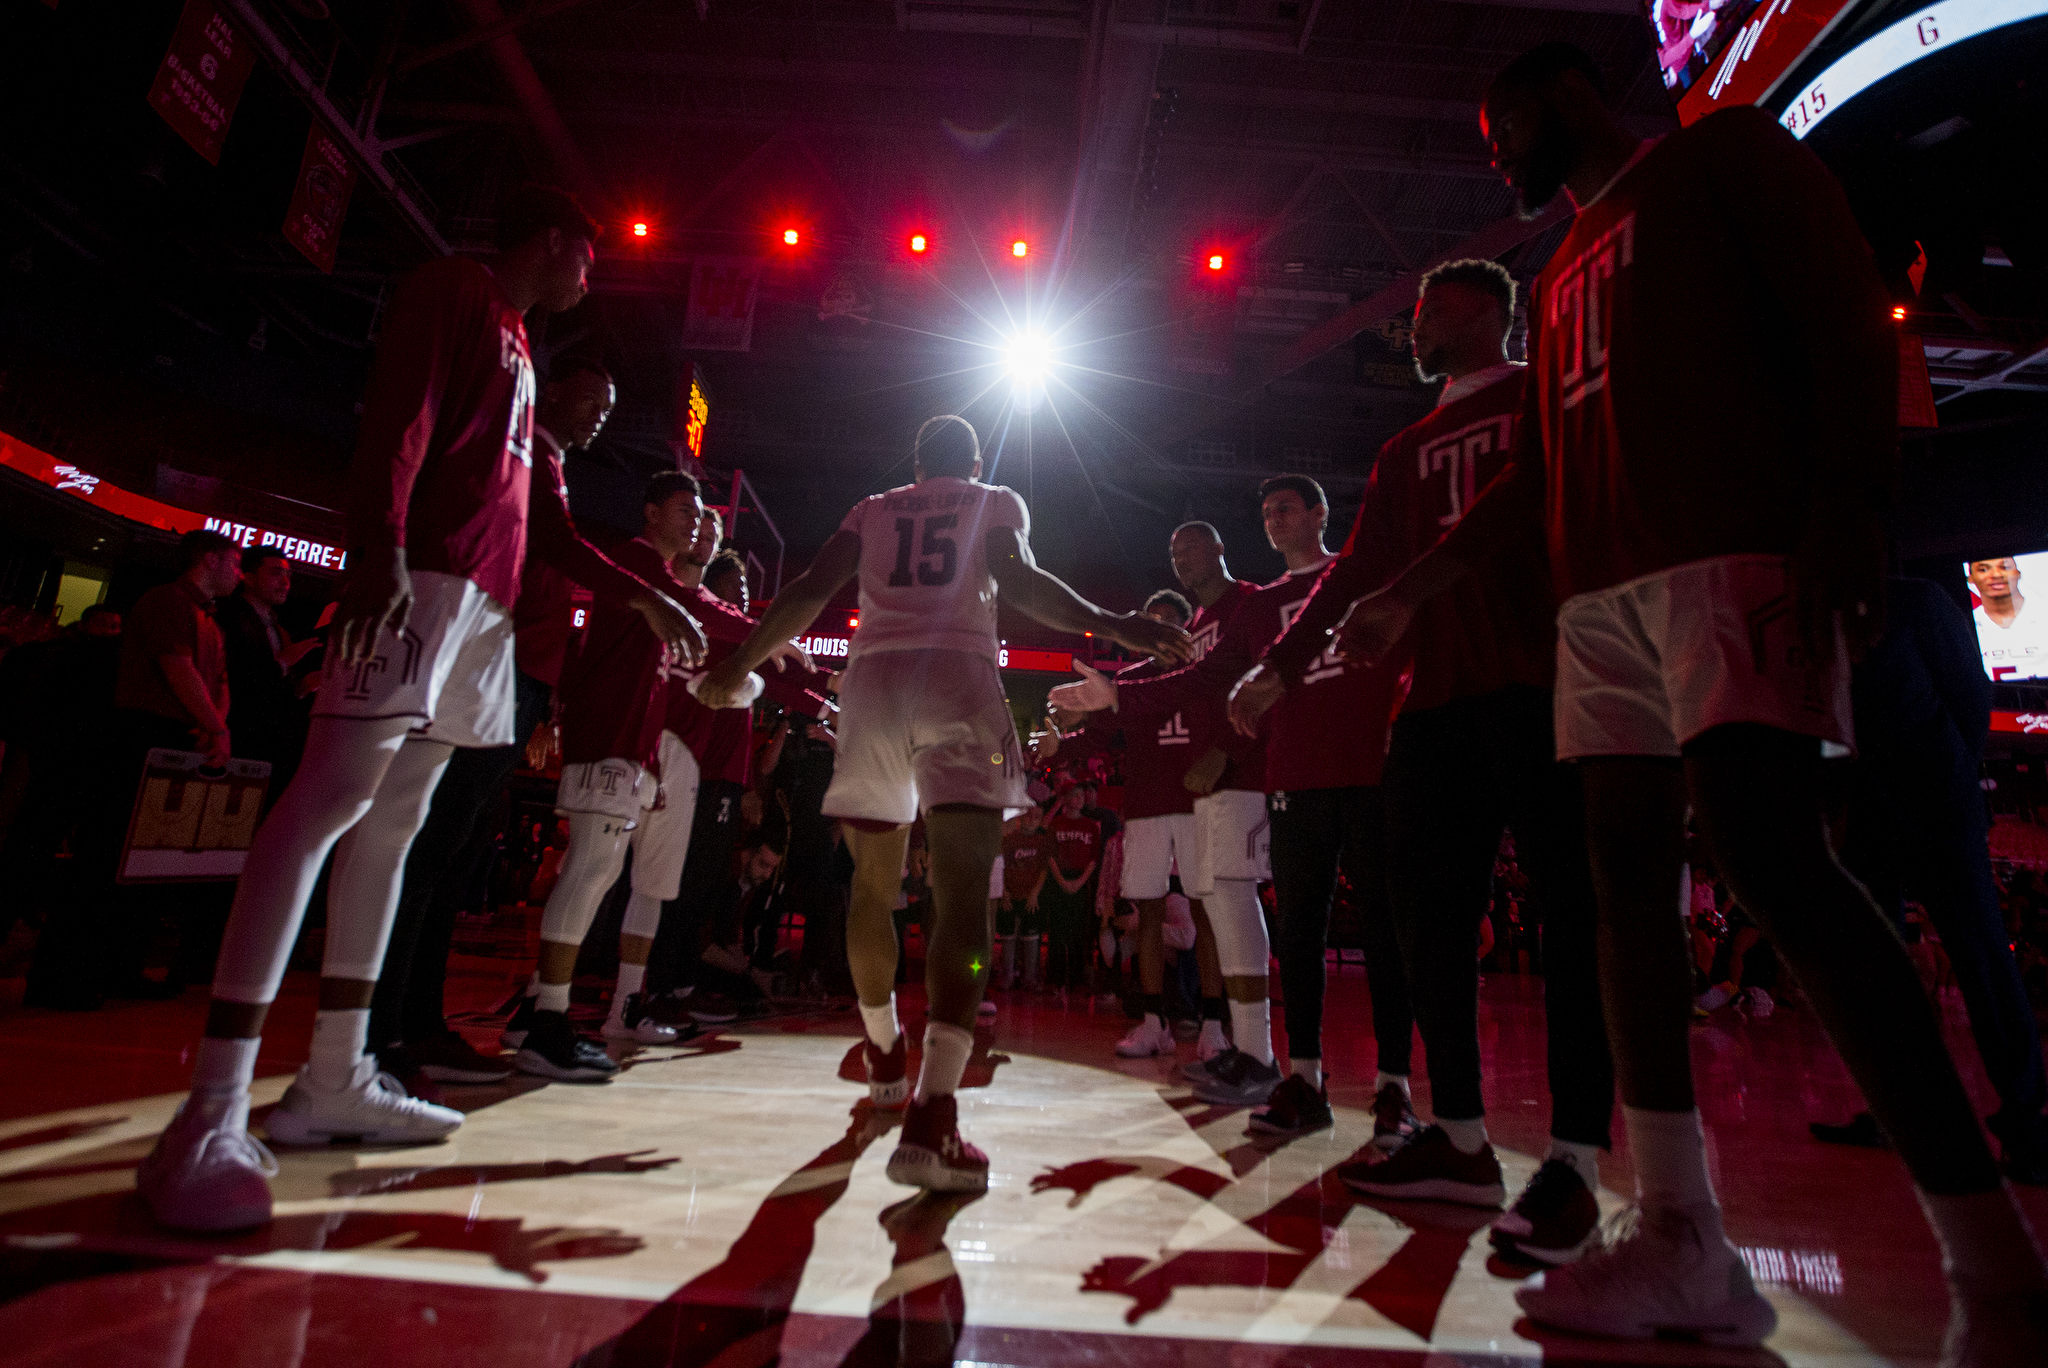 Nate Pierre-Louis, center, of Temple is introduced as part of the starting line-up against Georgia at the Liacouras Center on Nov. 13, 2018.